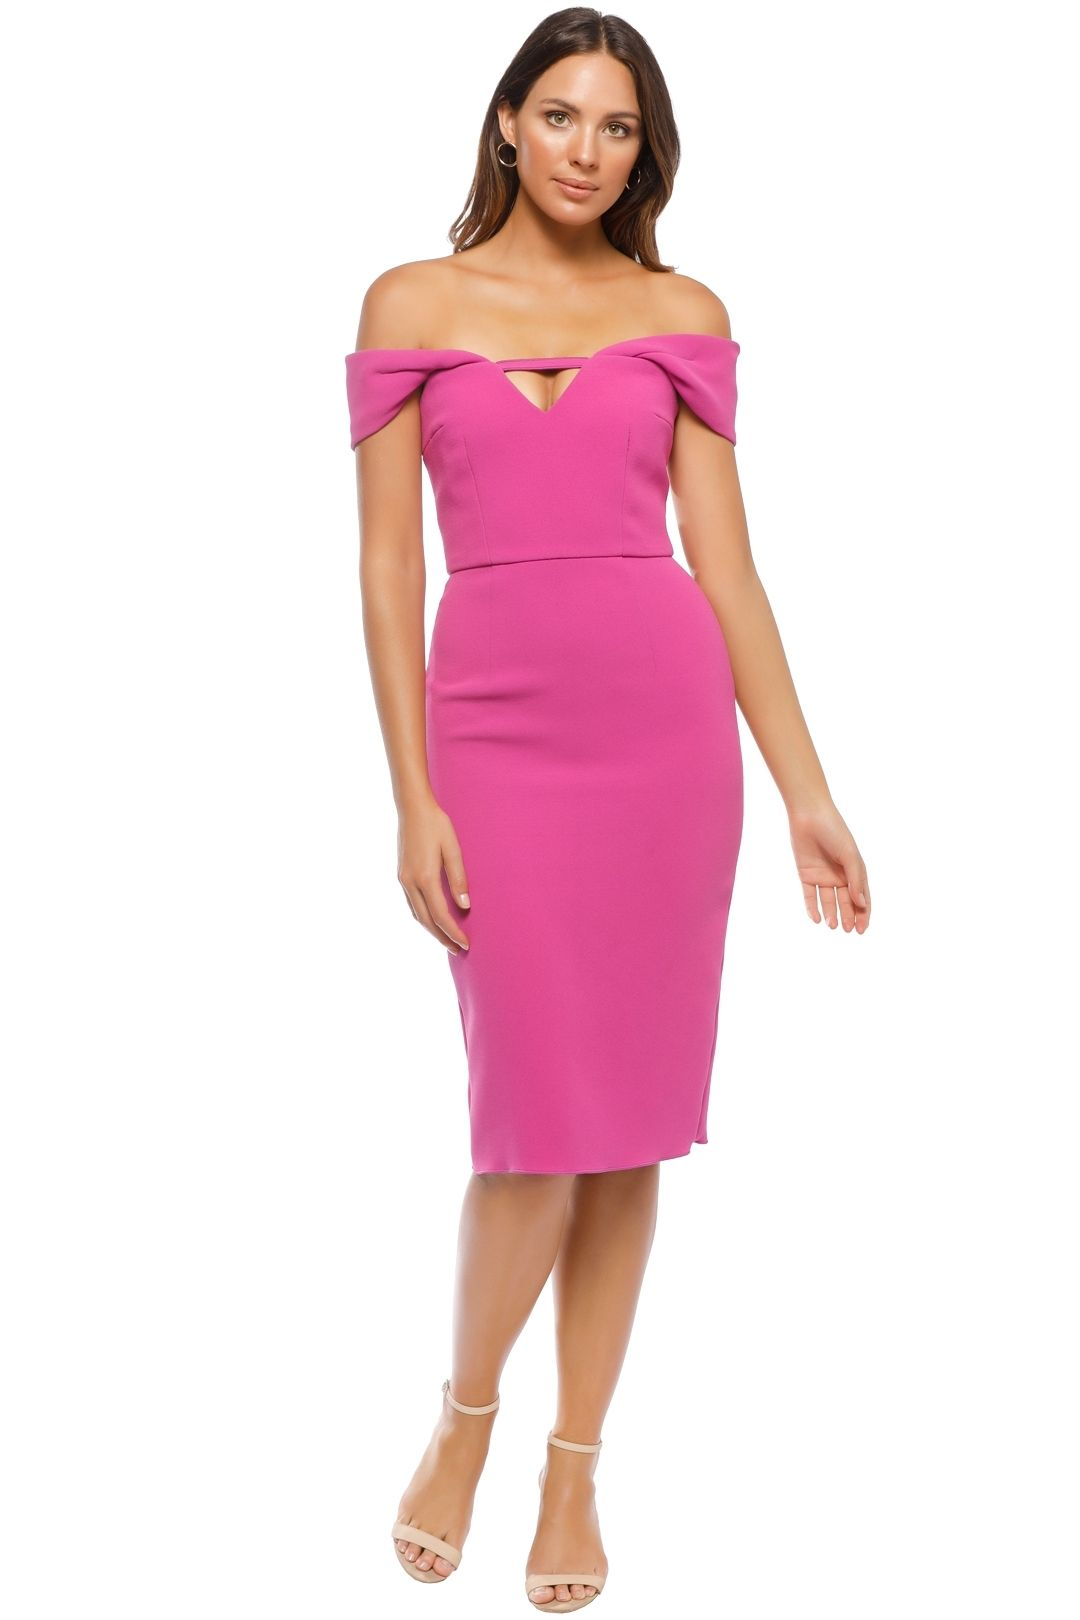 Yeojin Bae - Double Crepe Corrine Dress - Fuchsia - Front